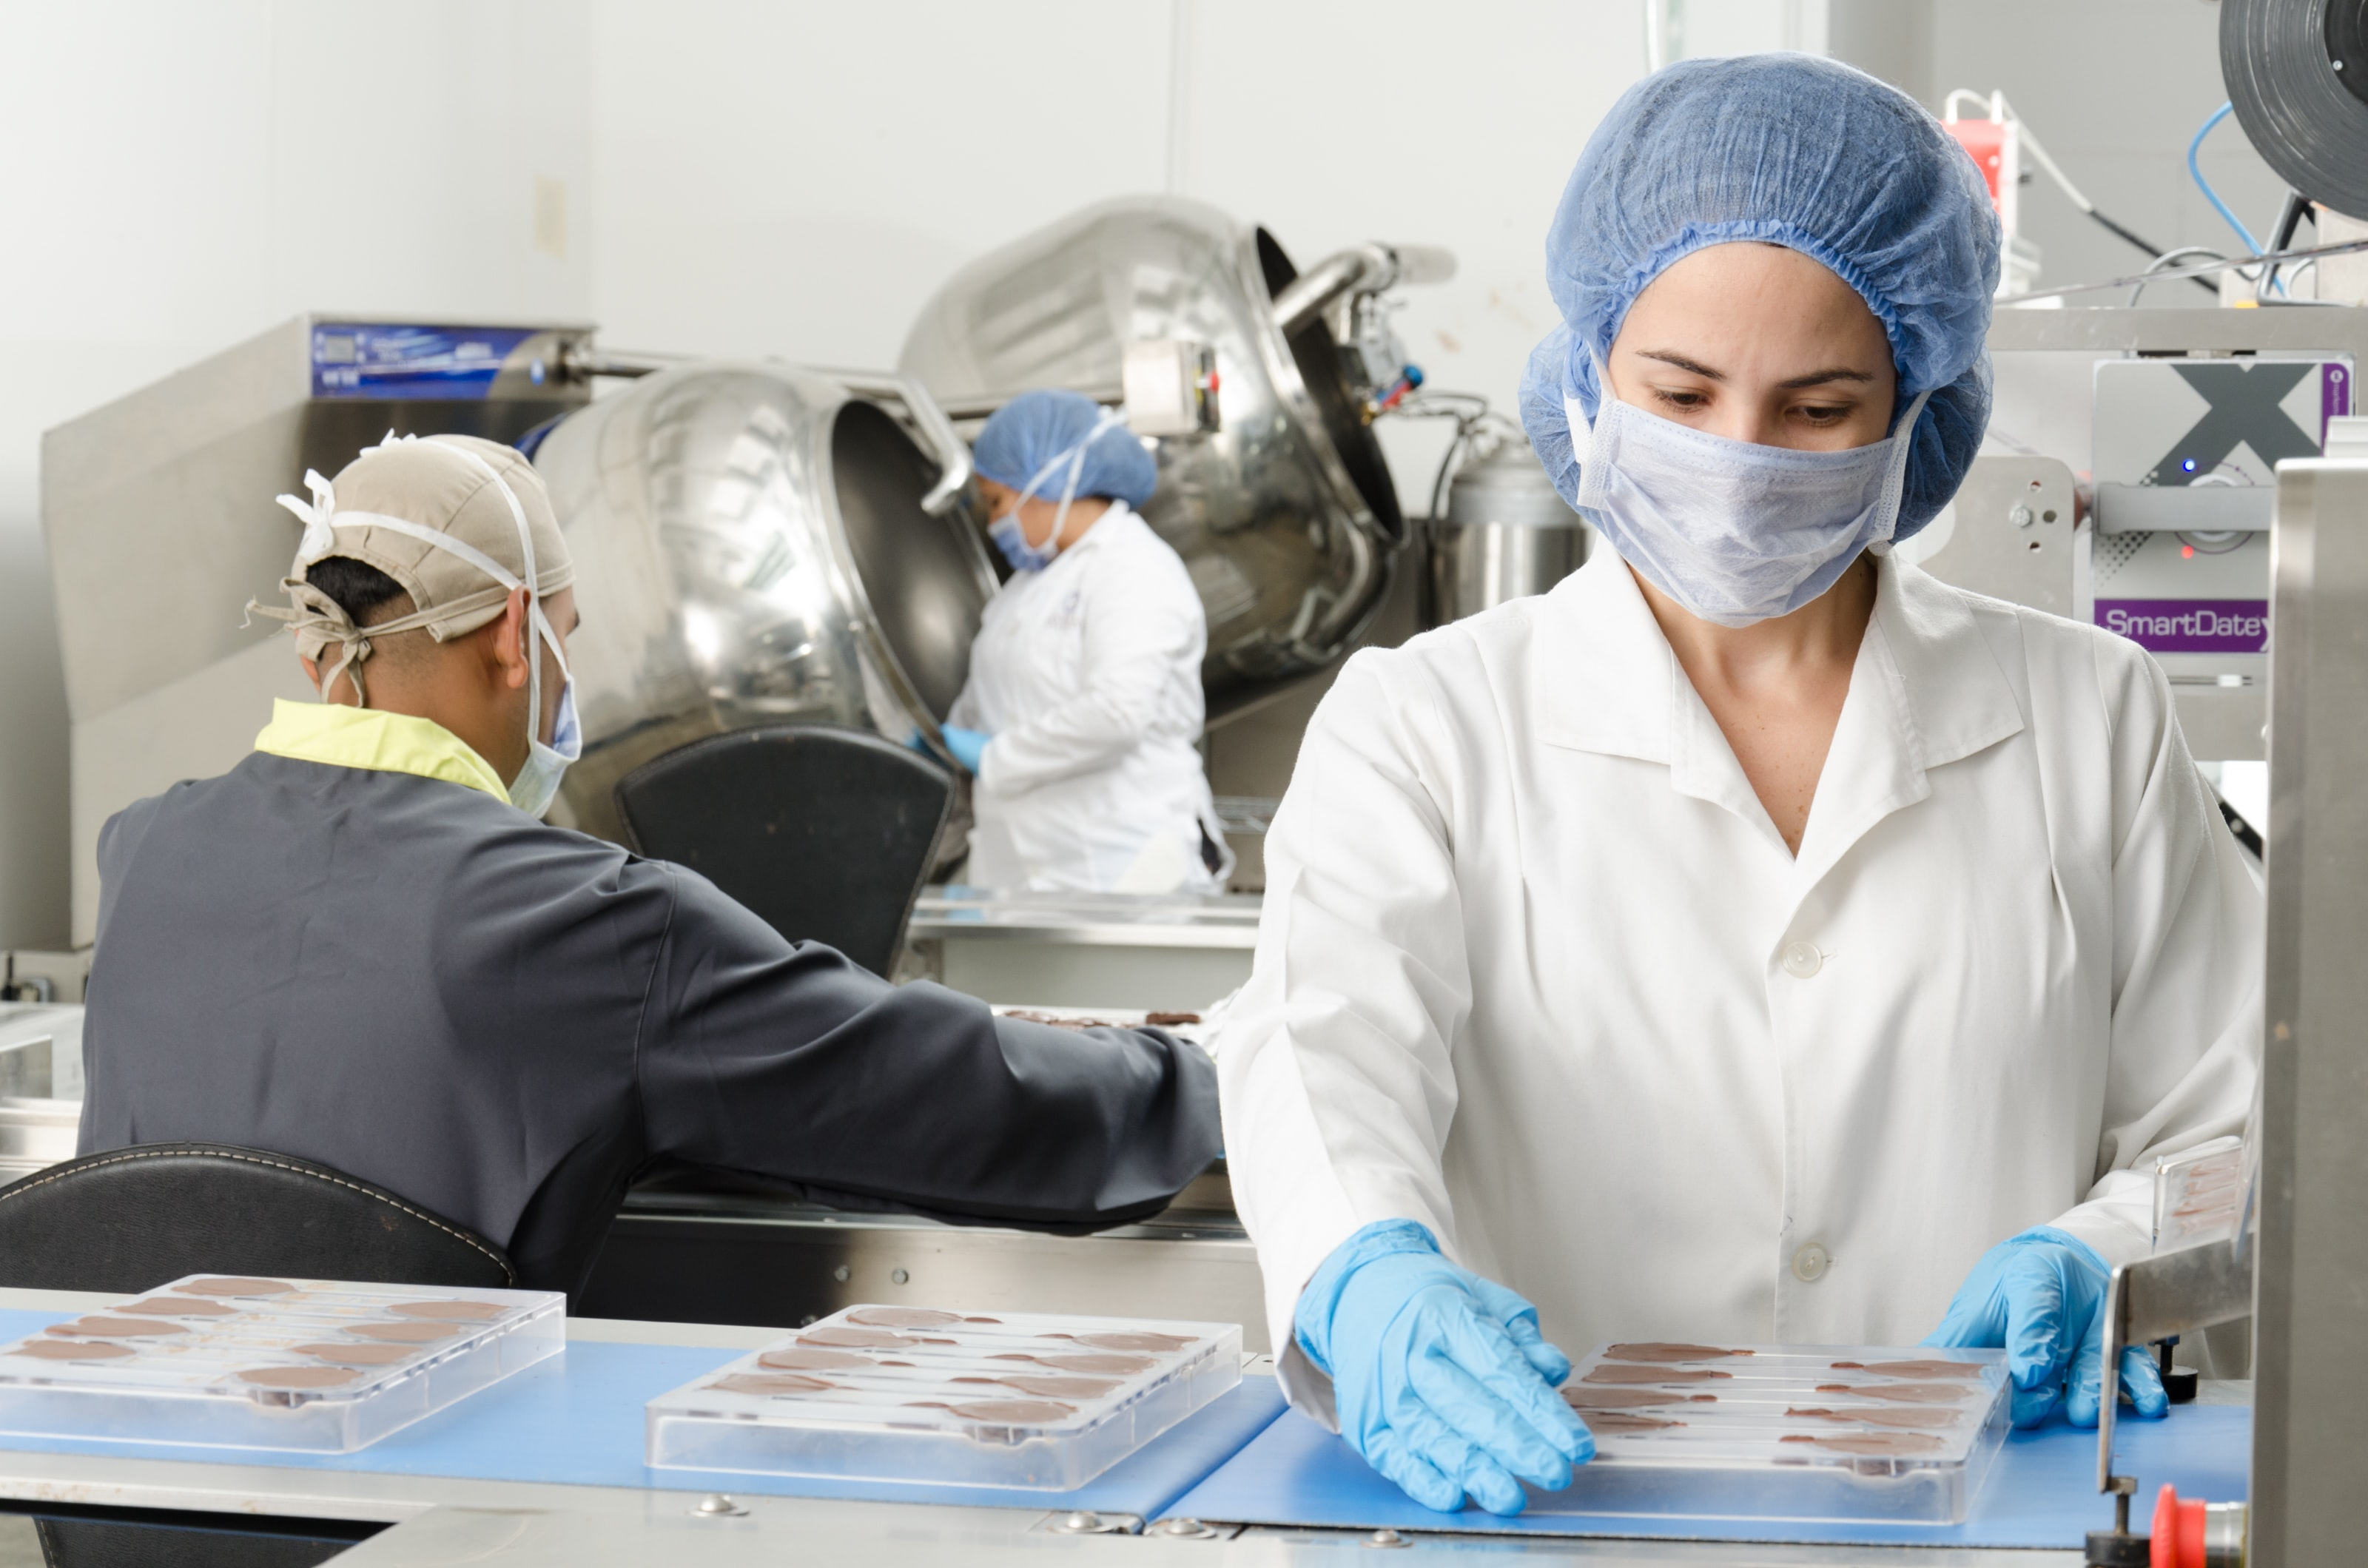 Supplier & Distributer Food Safety